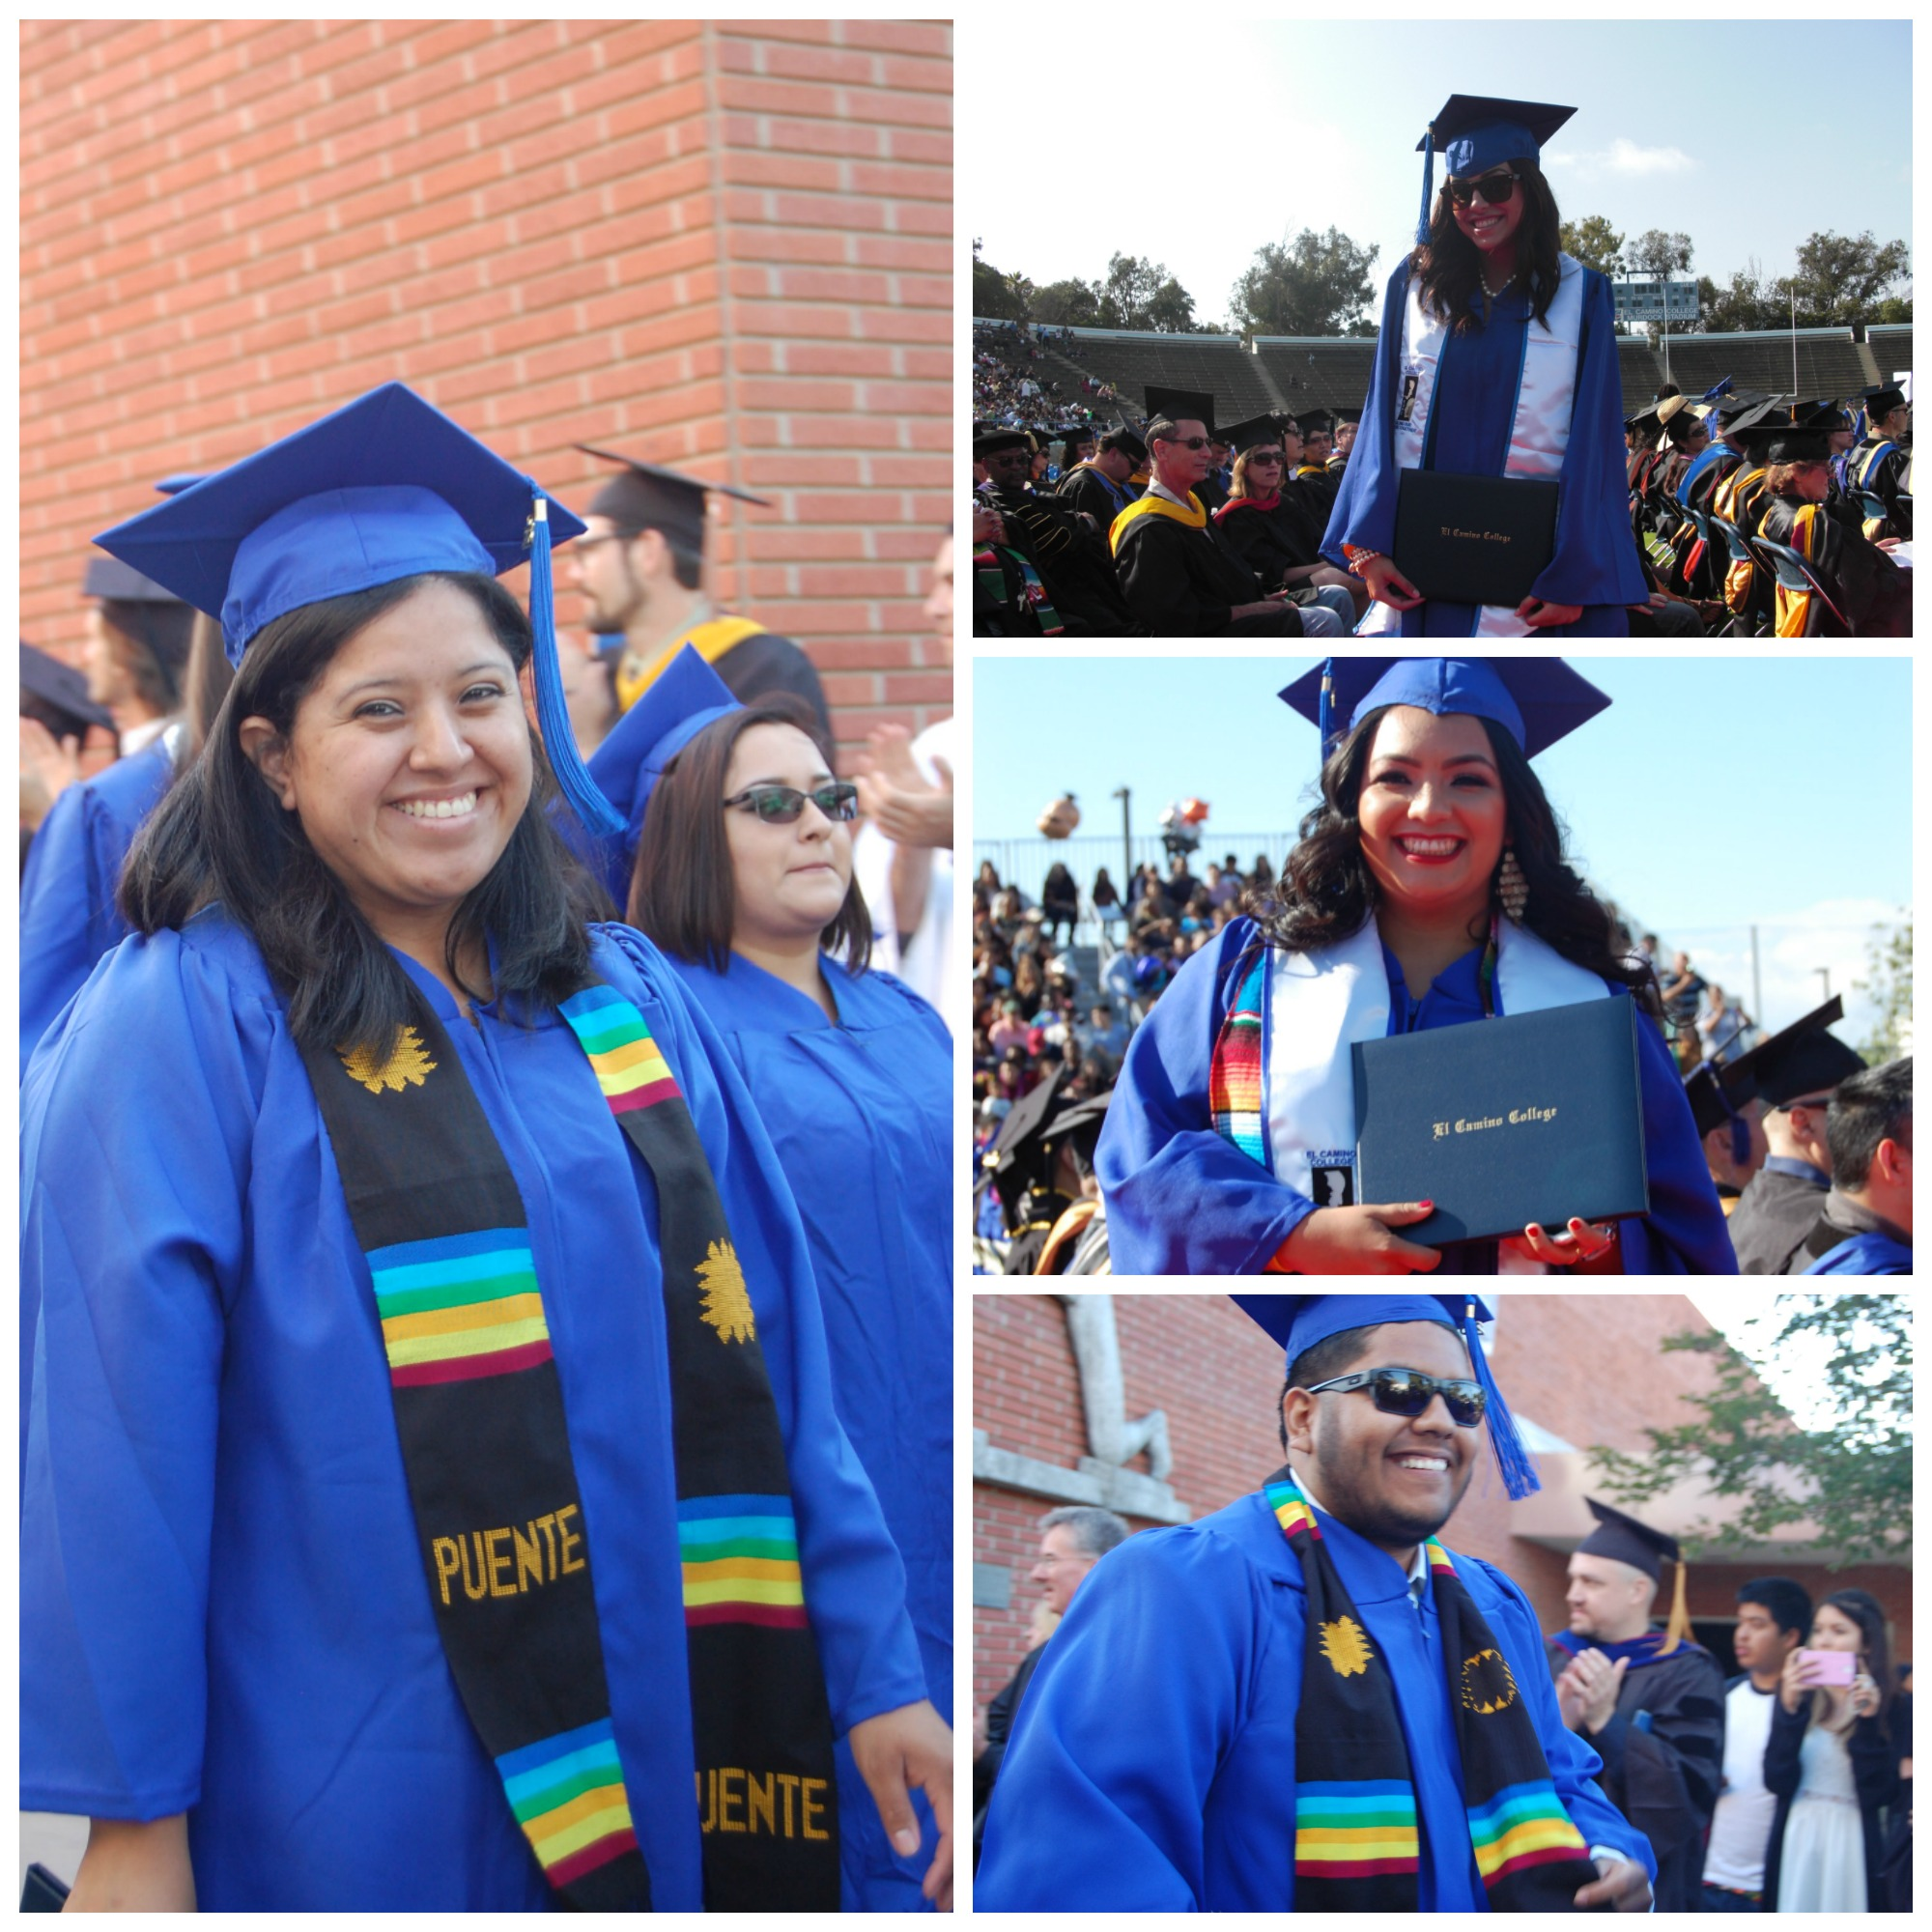 group of images showing puente students at graduation ceremony